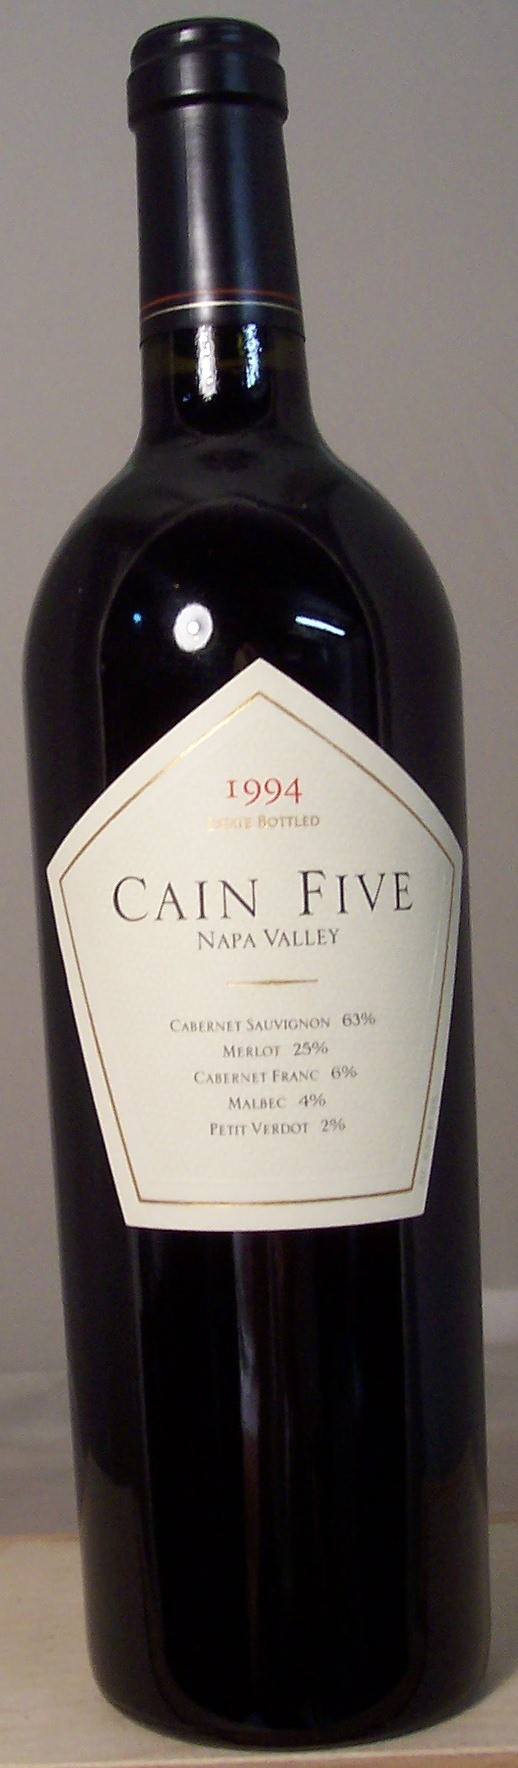 Cain Cellars Cain Five Napa Valley 1994